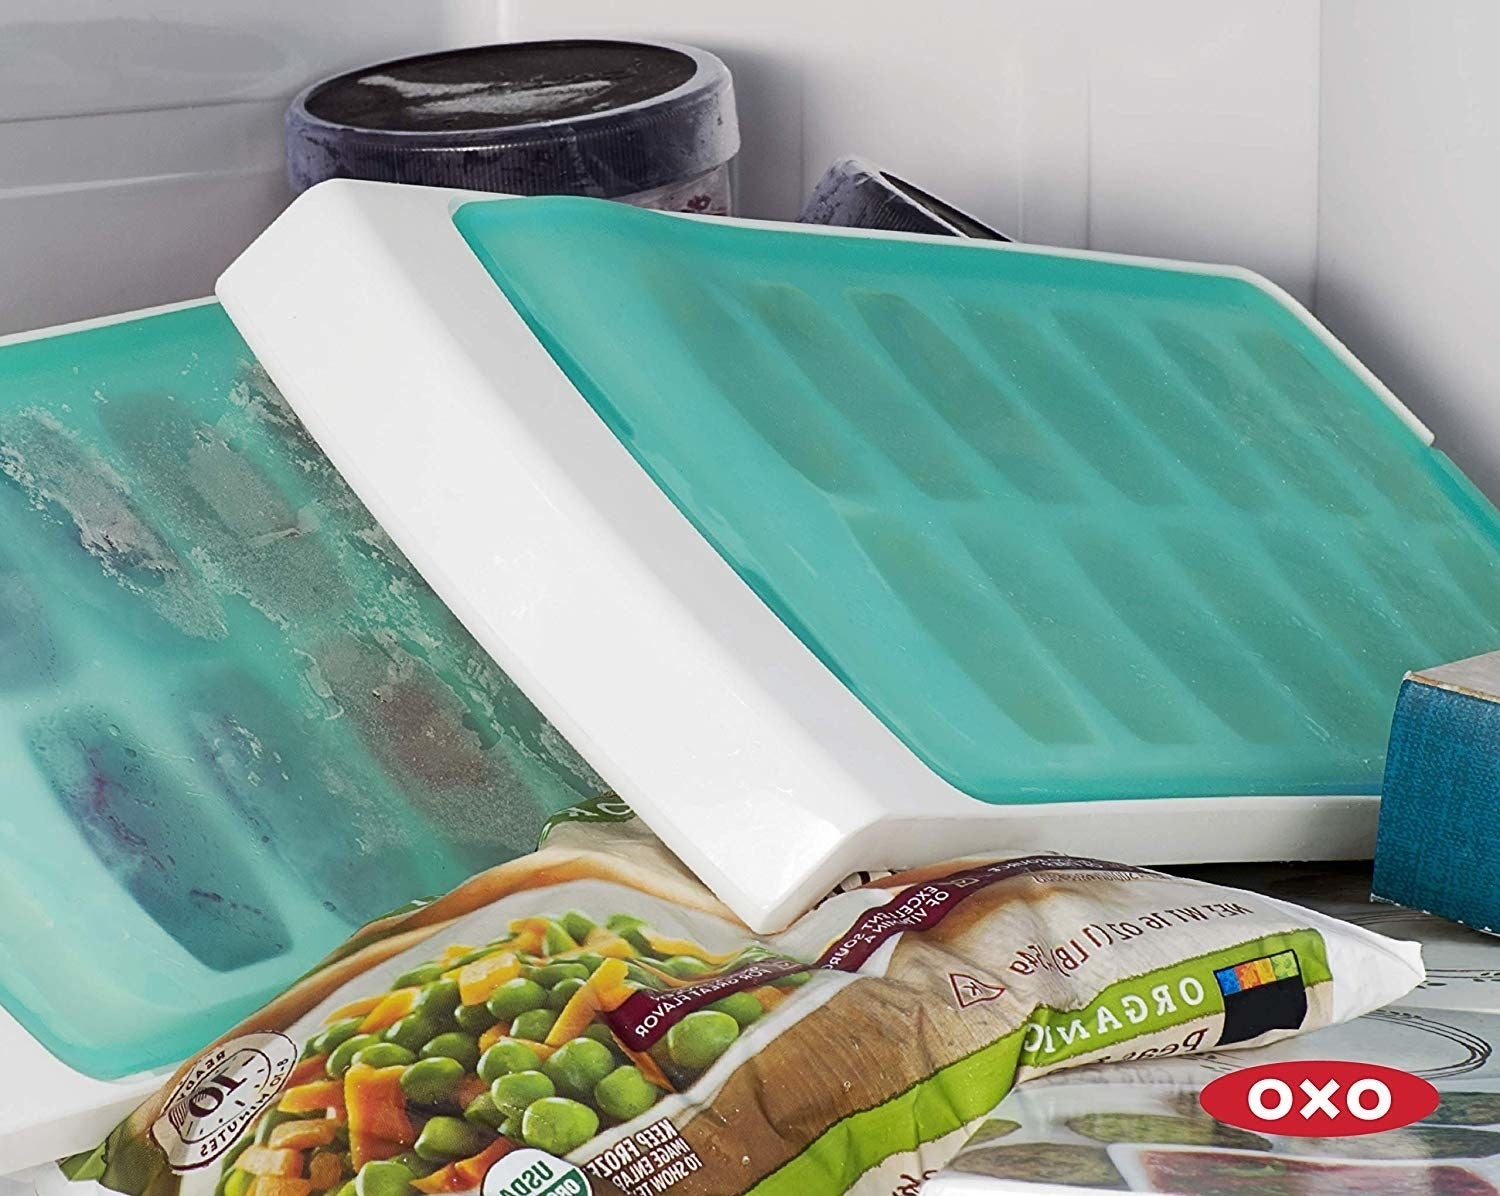 ice trays with silicone covers placed diagonally in freezer